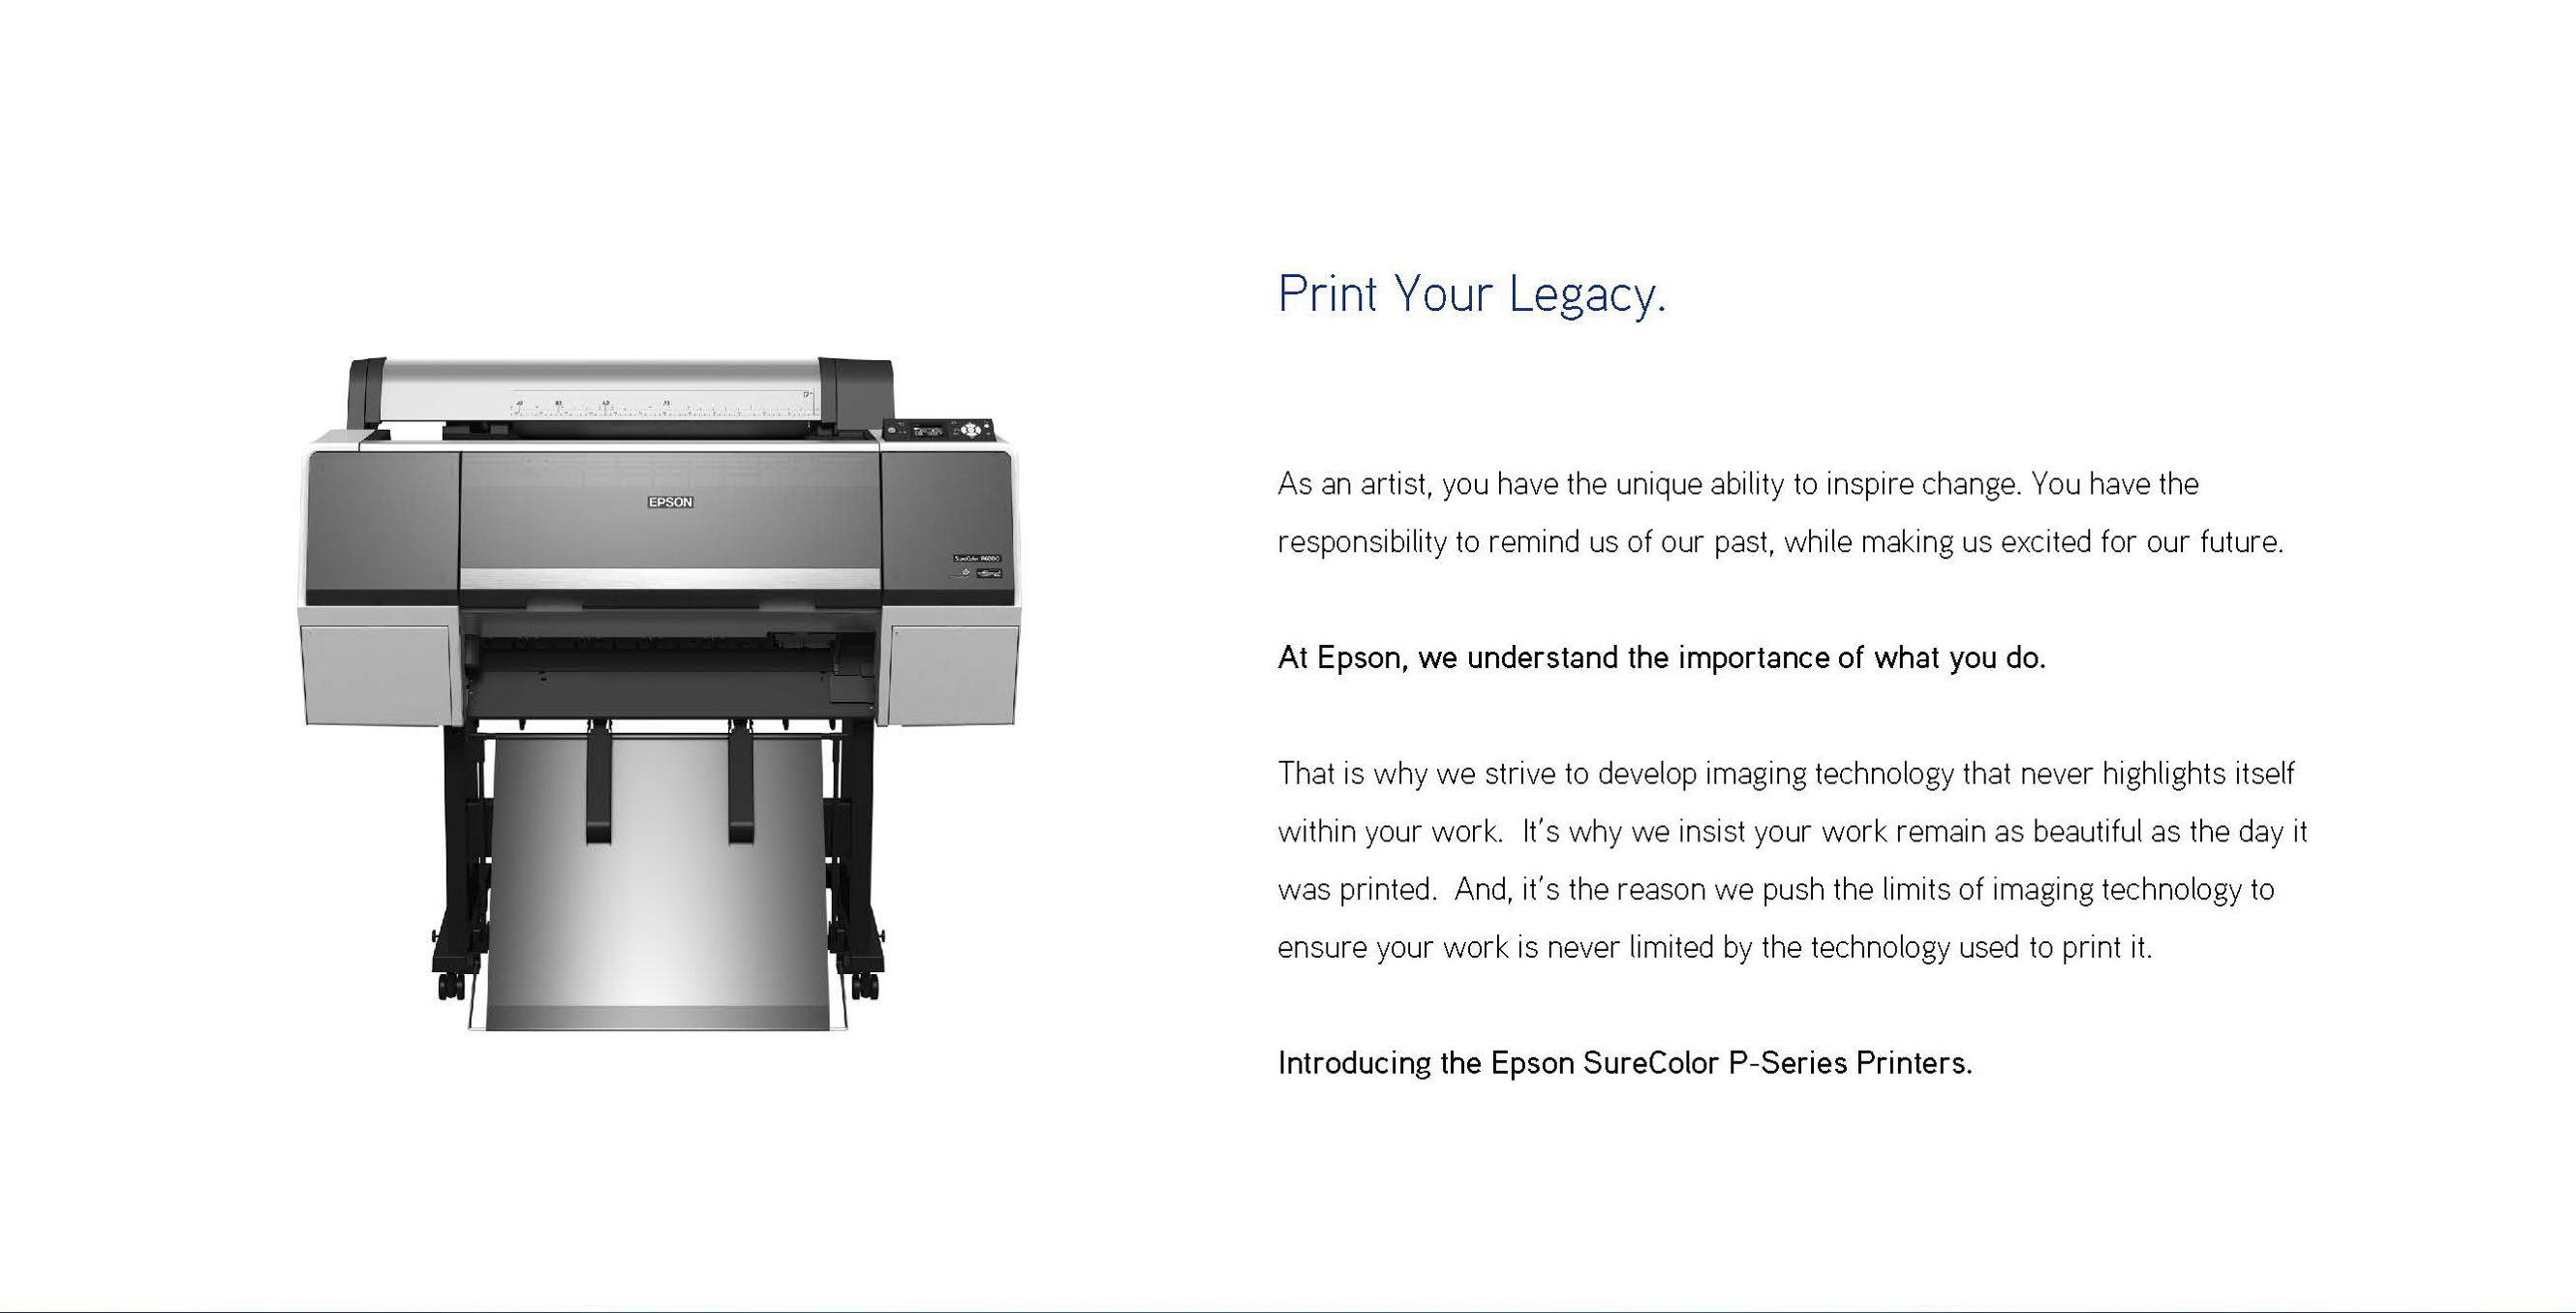 printing your legacy